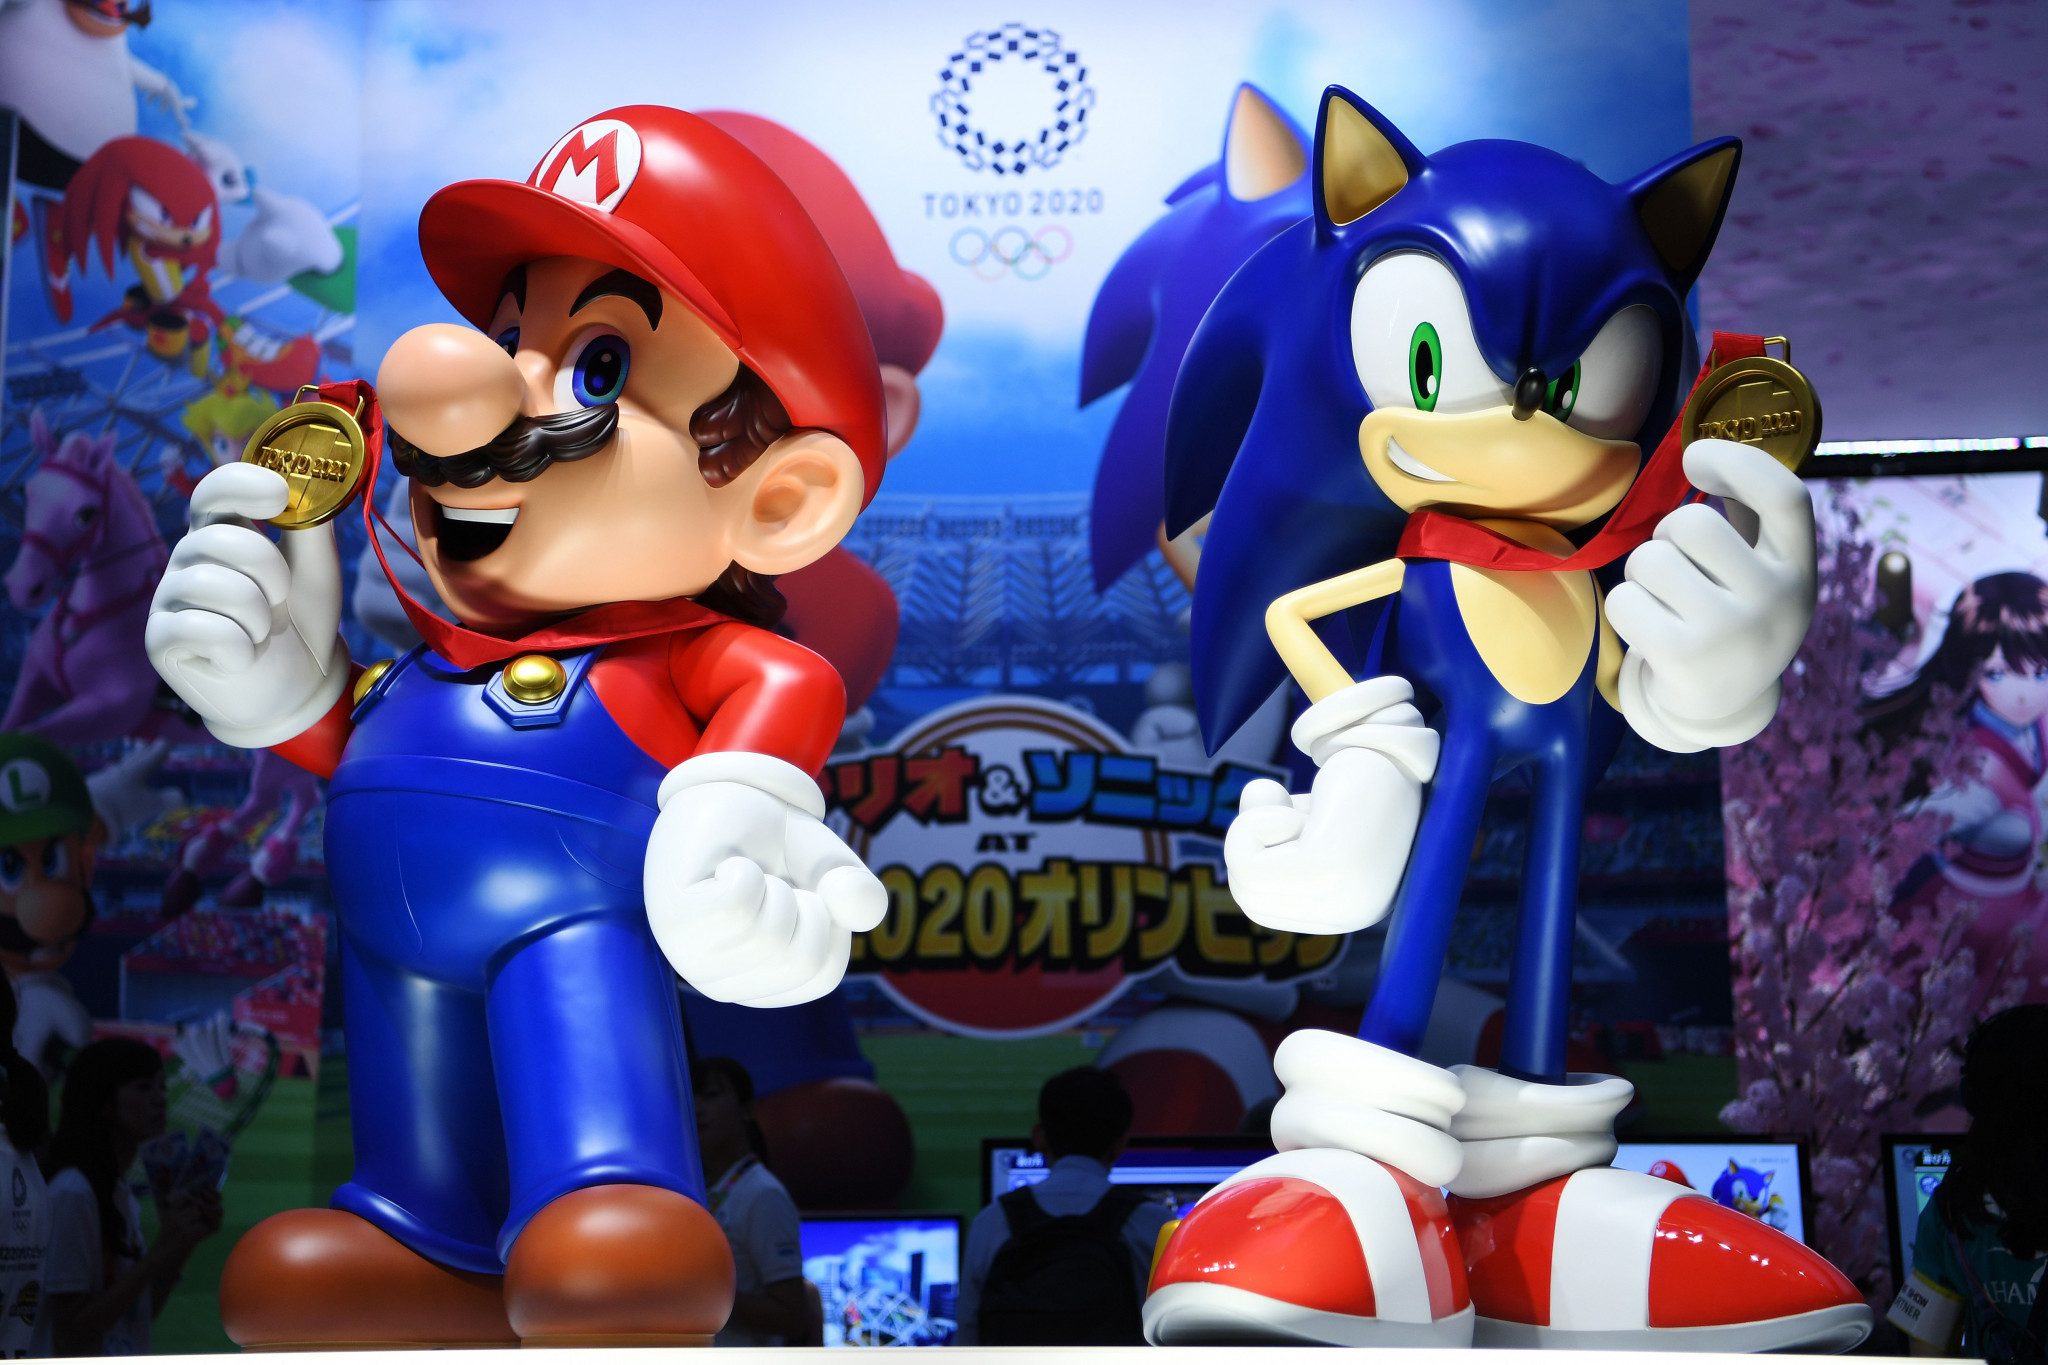 Mario And Sonic At The Olympic Games 2020.Mario And Sonic Set For Tokyo 2020 Battle As Nintendo